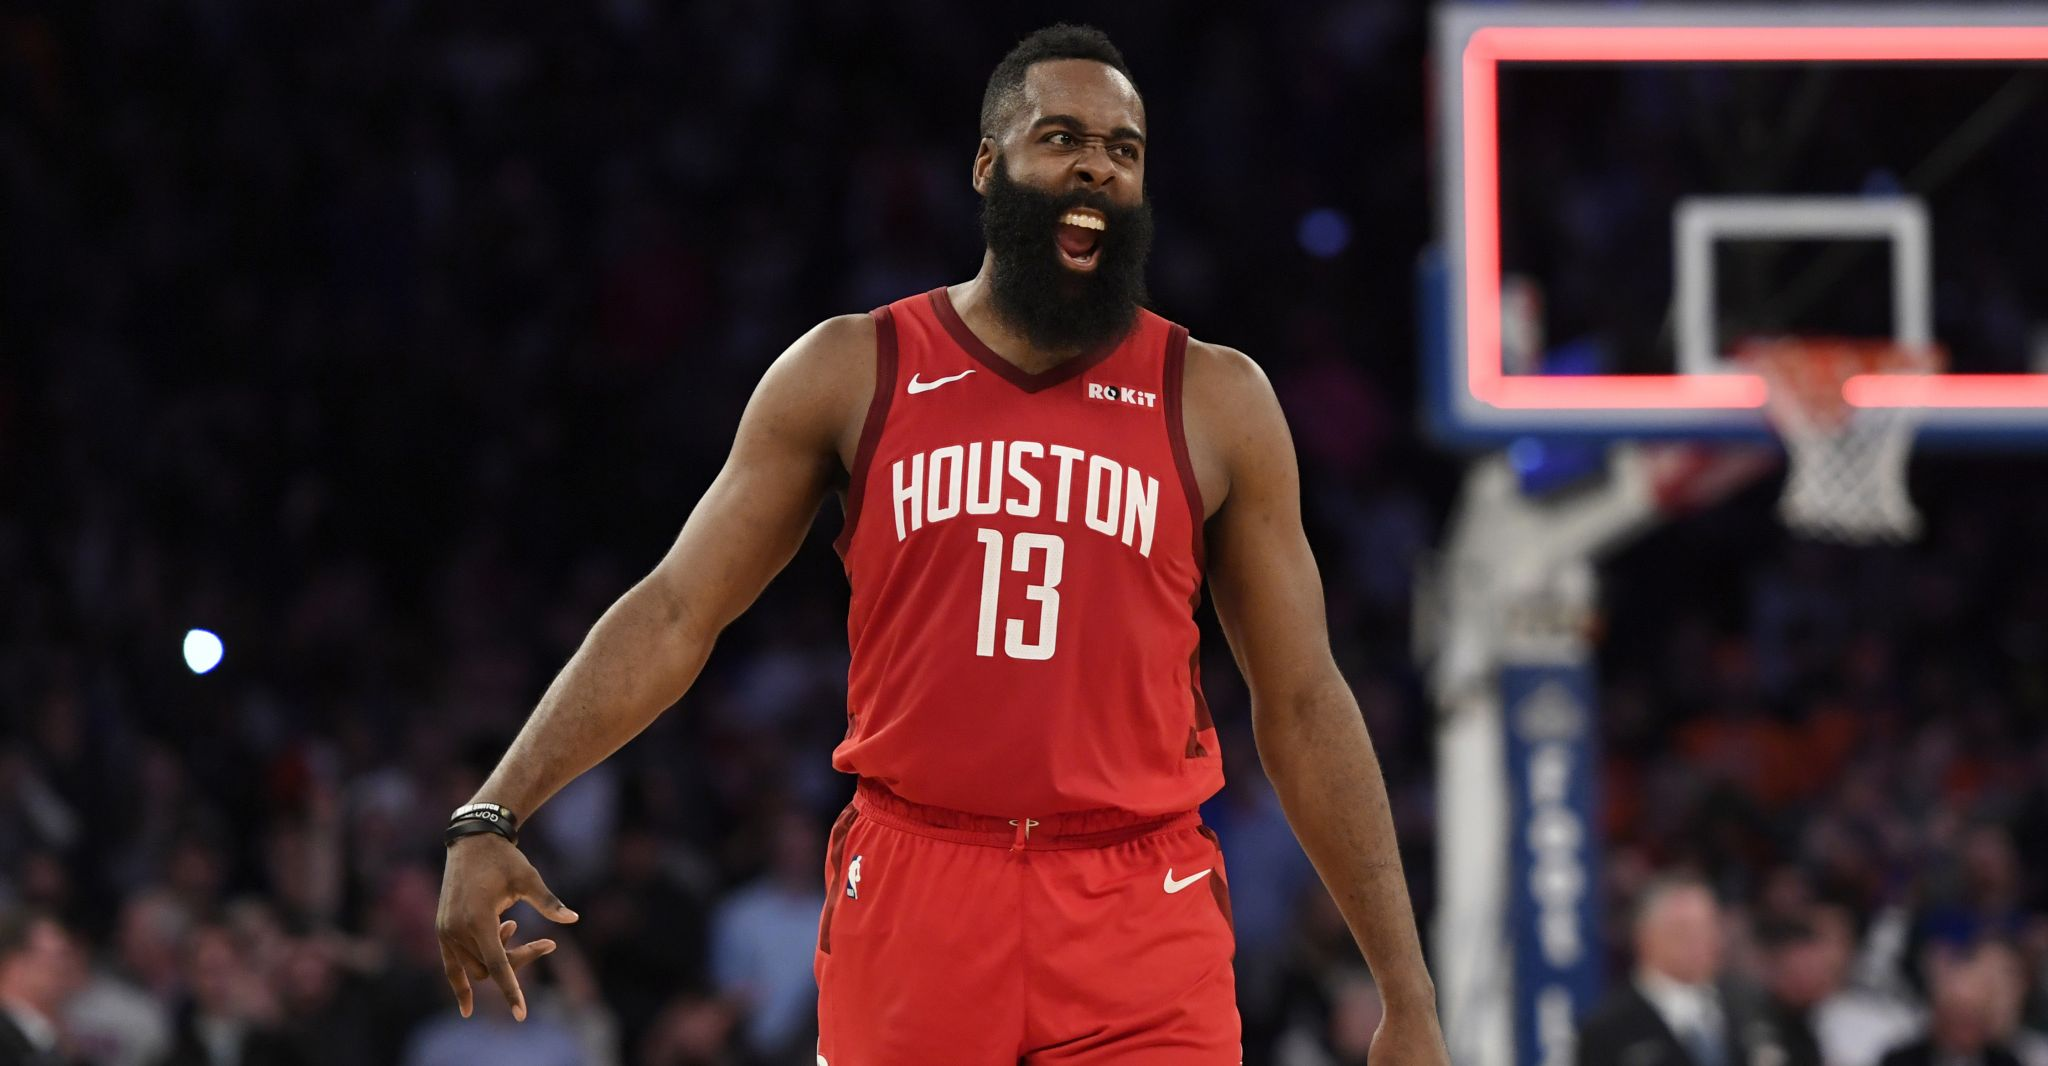 Houston Rockets Look The Best Option For A Championship Bid